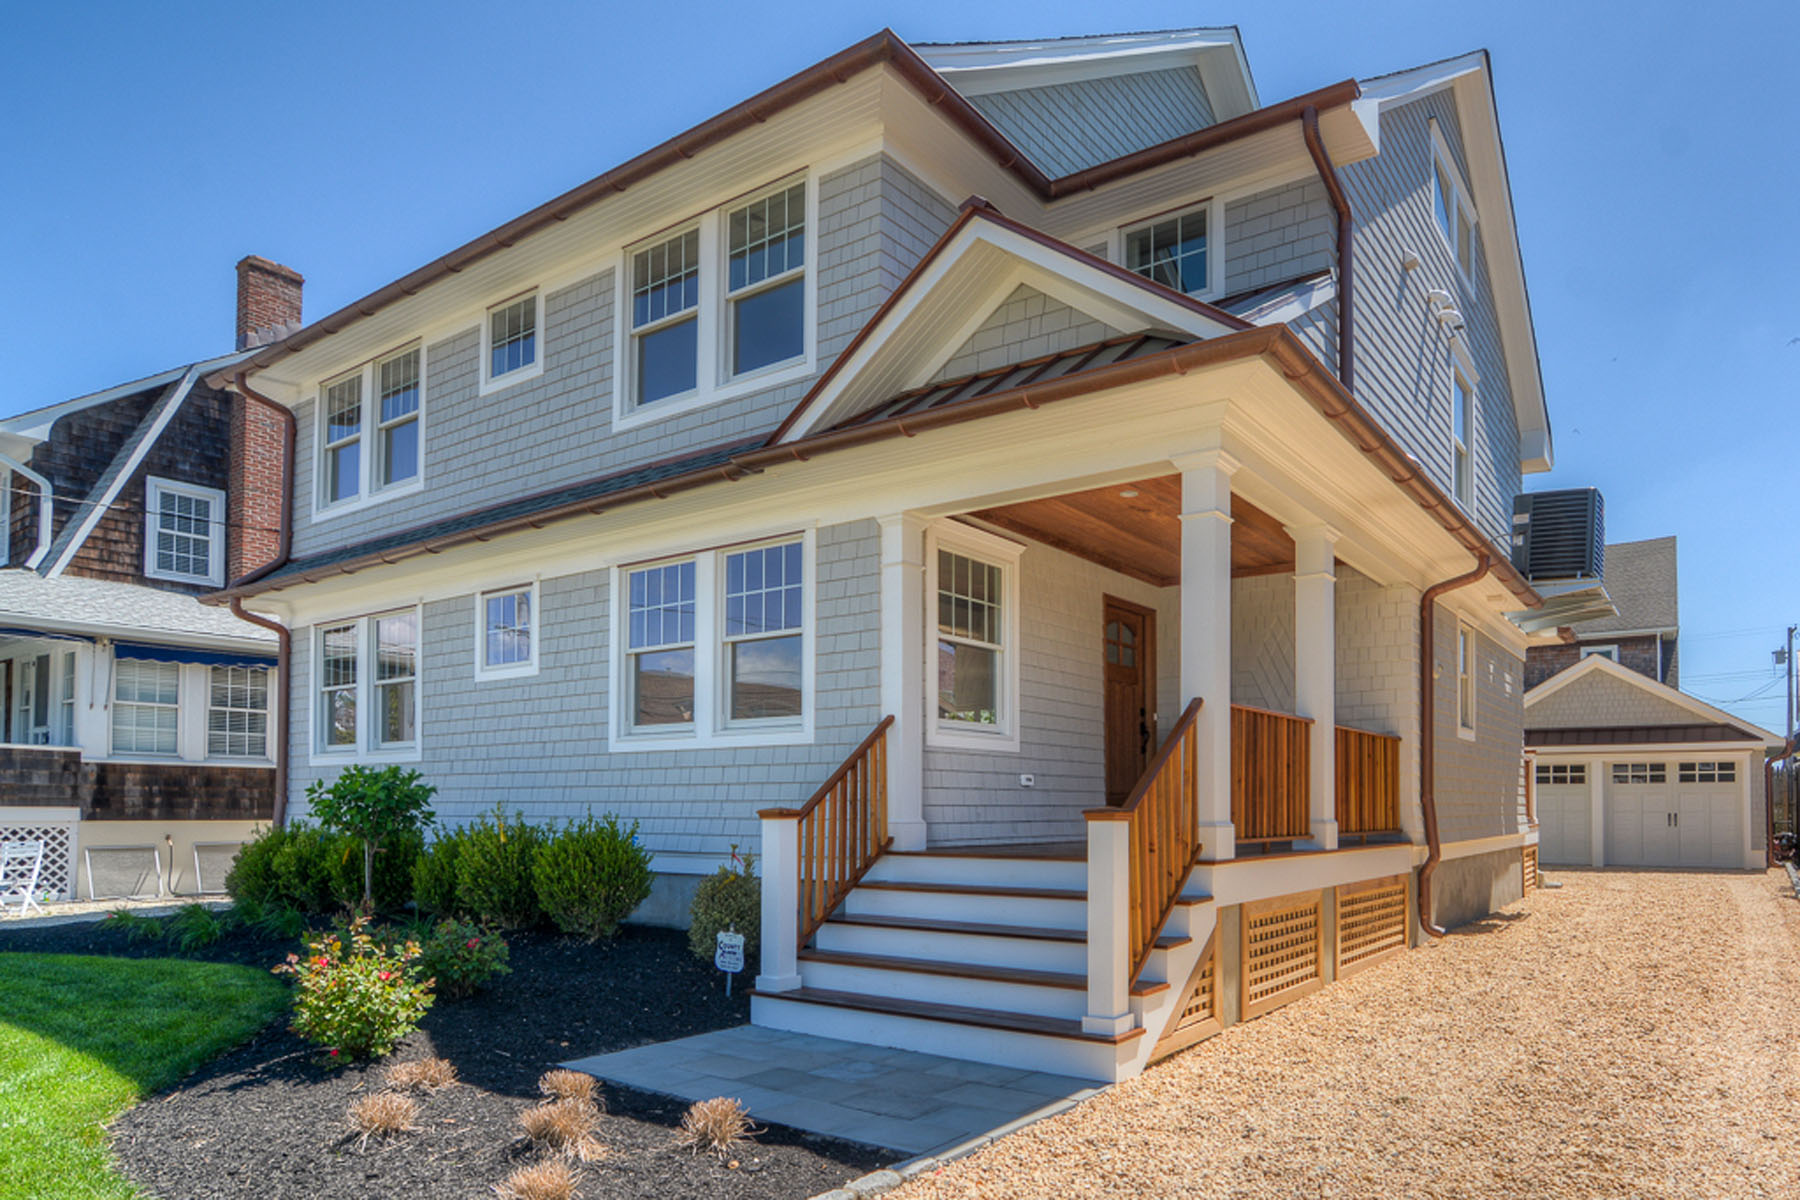 Single Family Homes for Sale at Completely Transformed Shore Colonial With Ocean Views 659 Main Avenue Bay Head, New Jersey 08742 United States